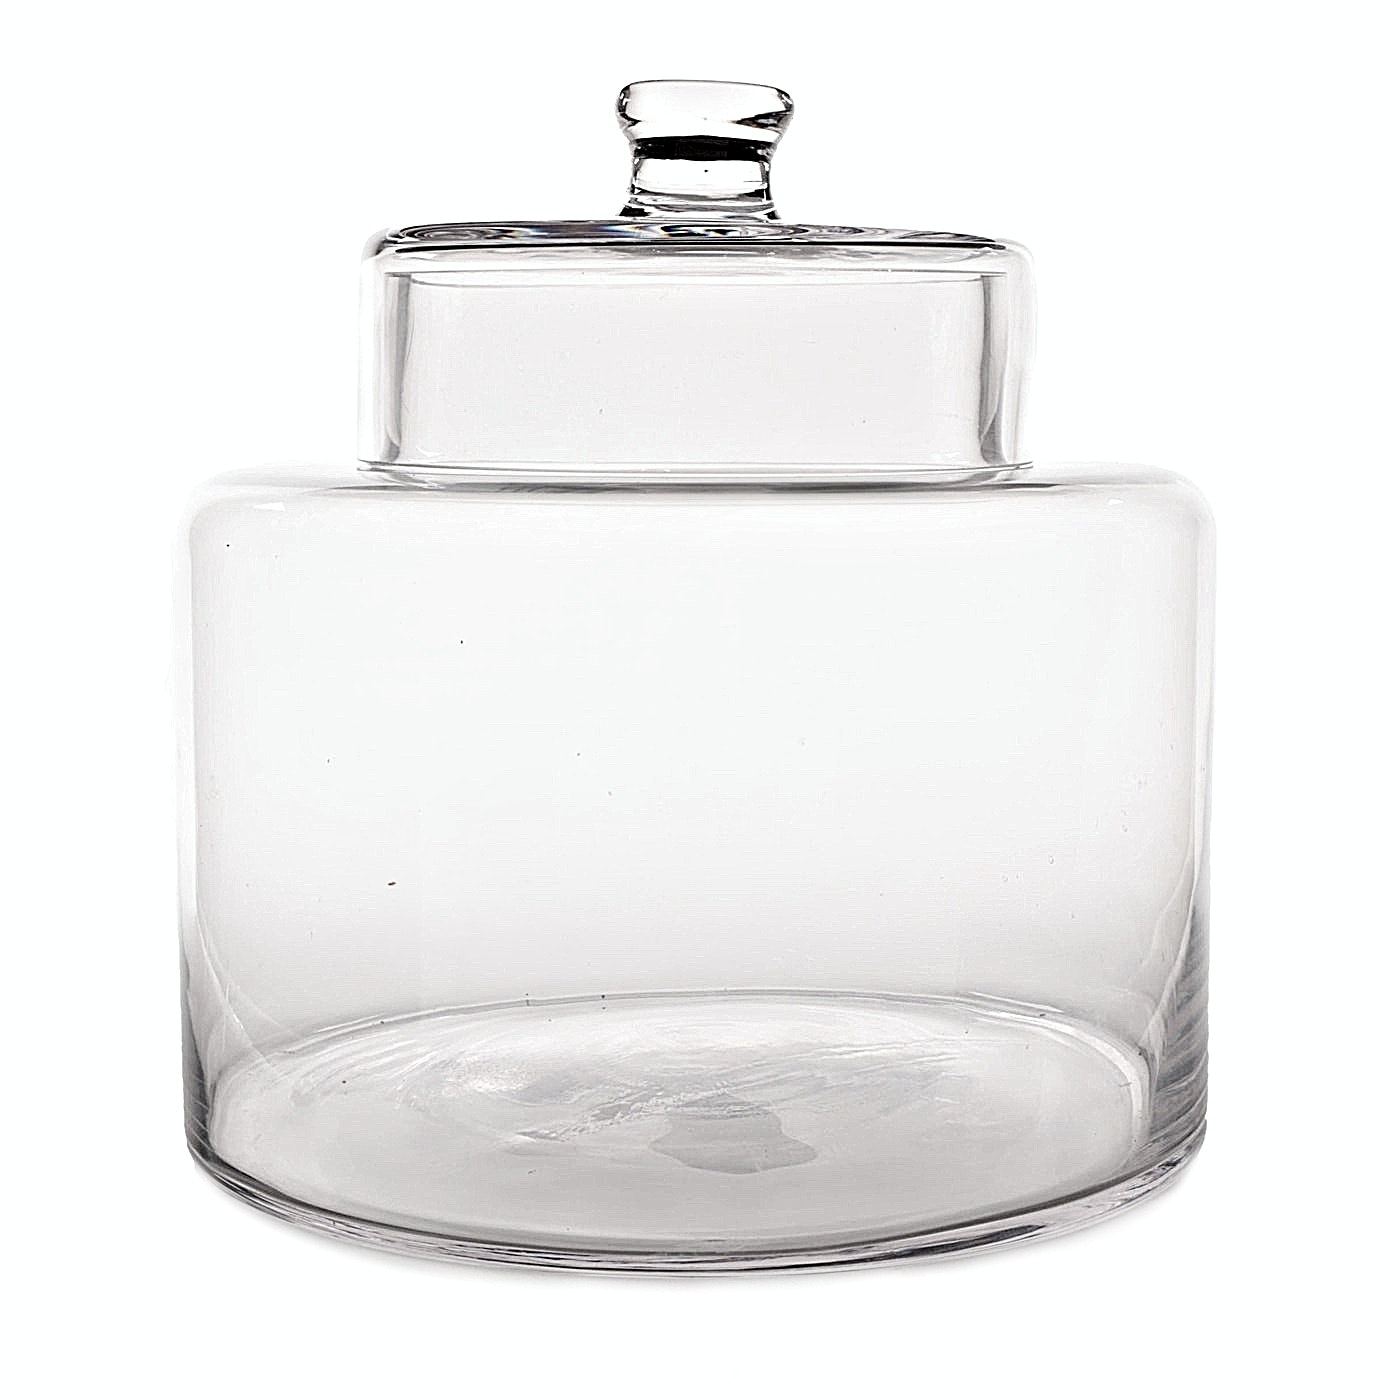 Extra Large Lidded Glass Cookie Jar